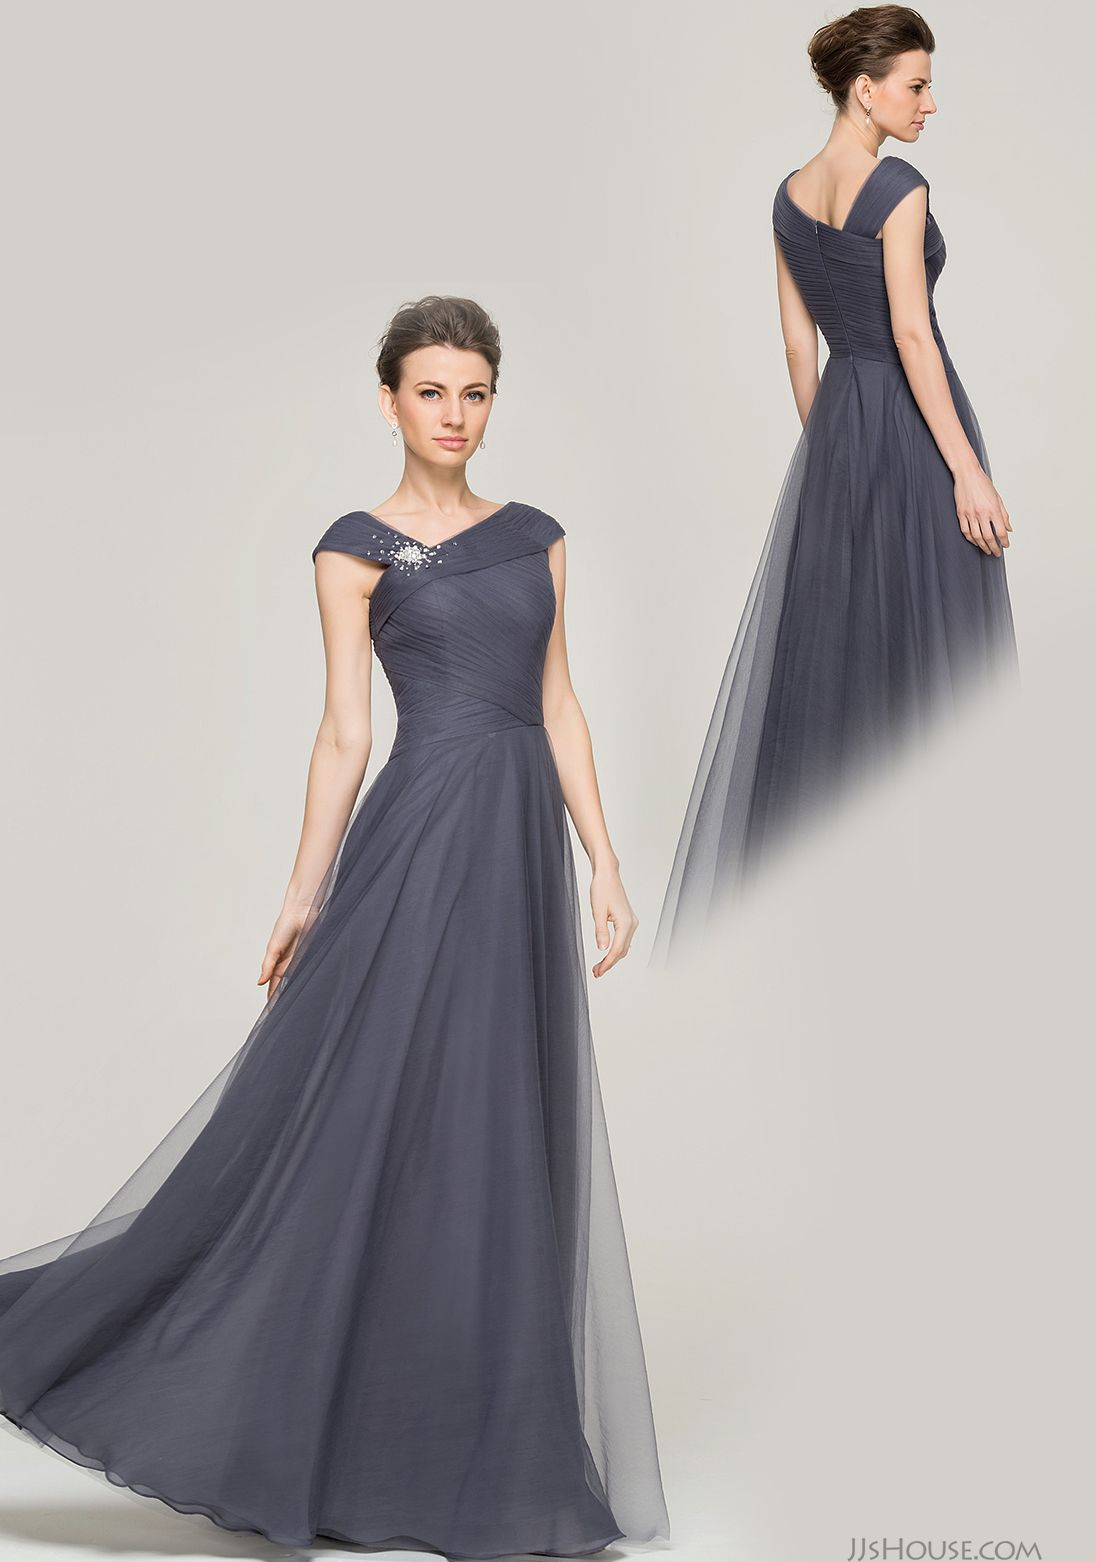 1a13c2ef6891 You will radiate pure elegance in this beautiful dress perfect for any  Mother of the Bride